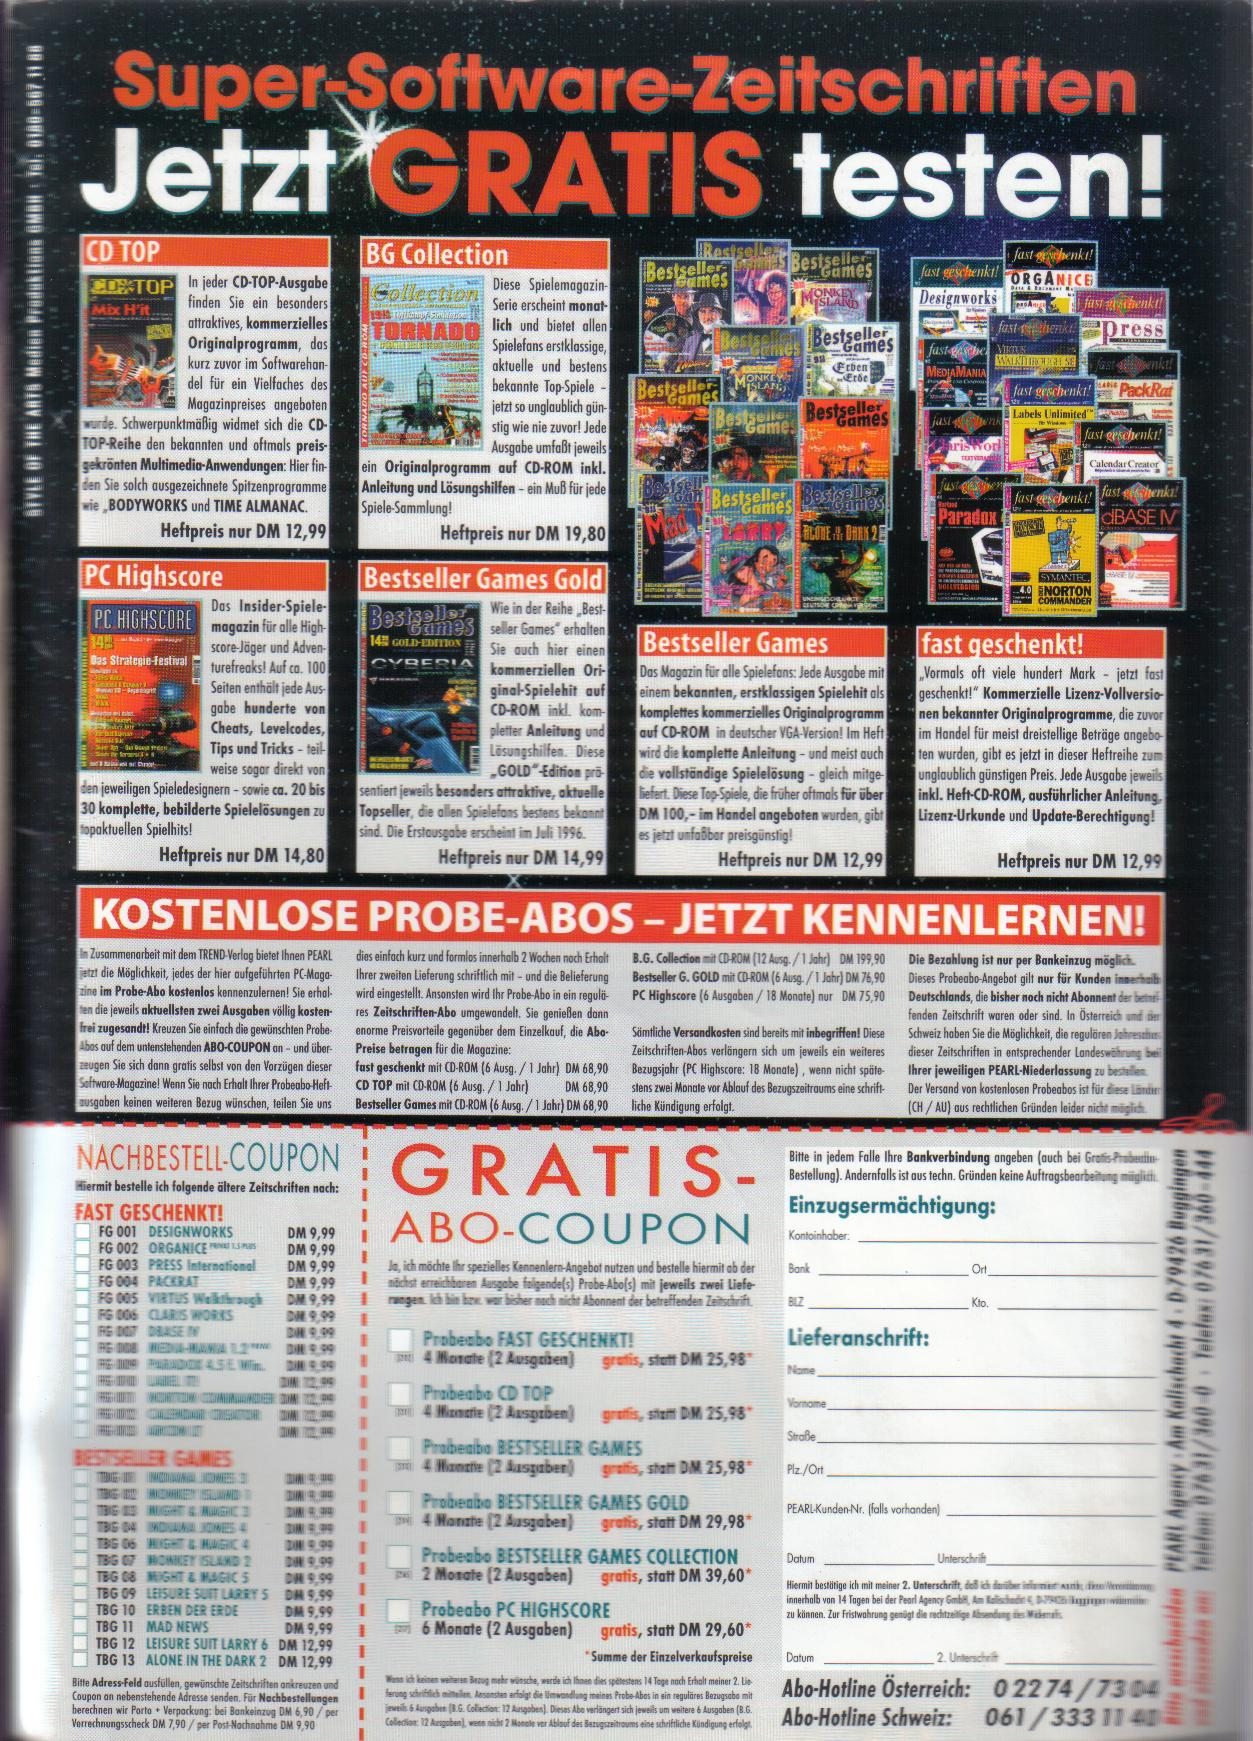 Dungeon Master II for PC (German, Best Seller Games) Page 51